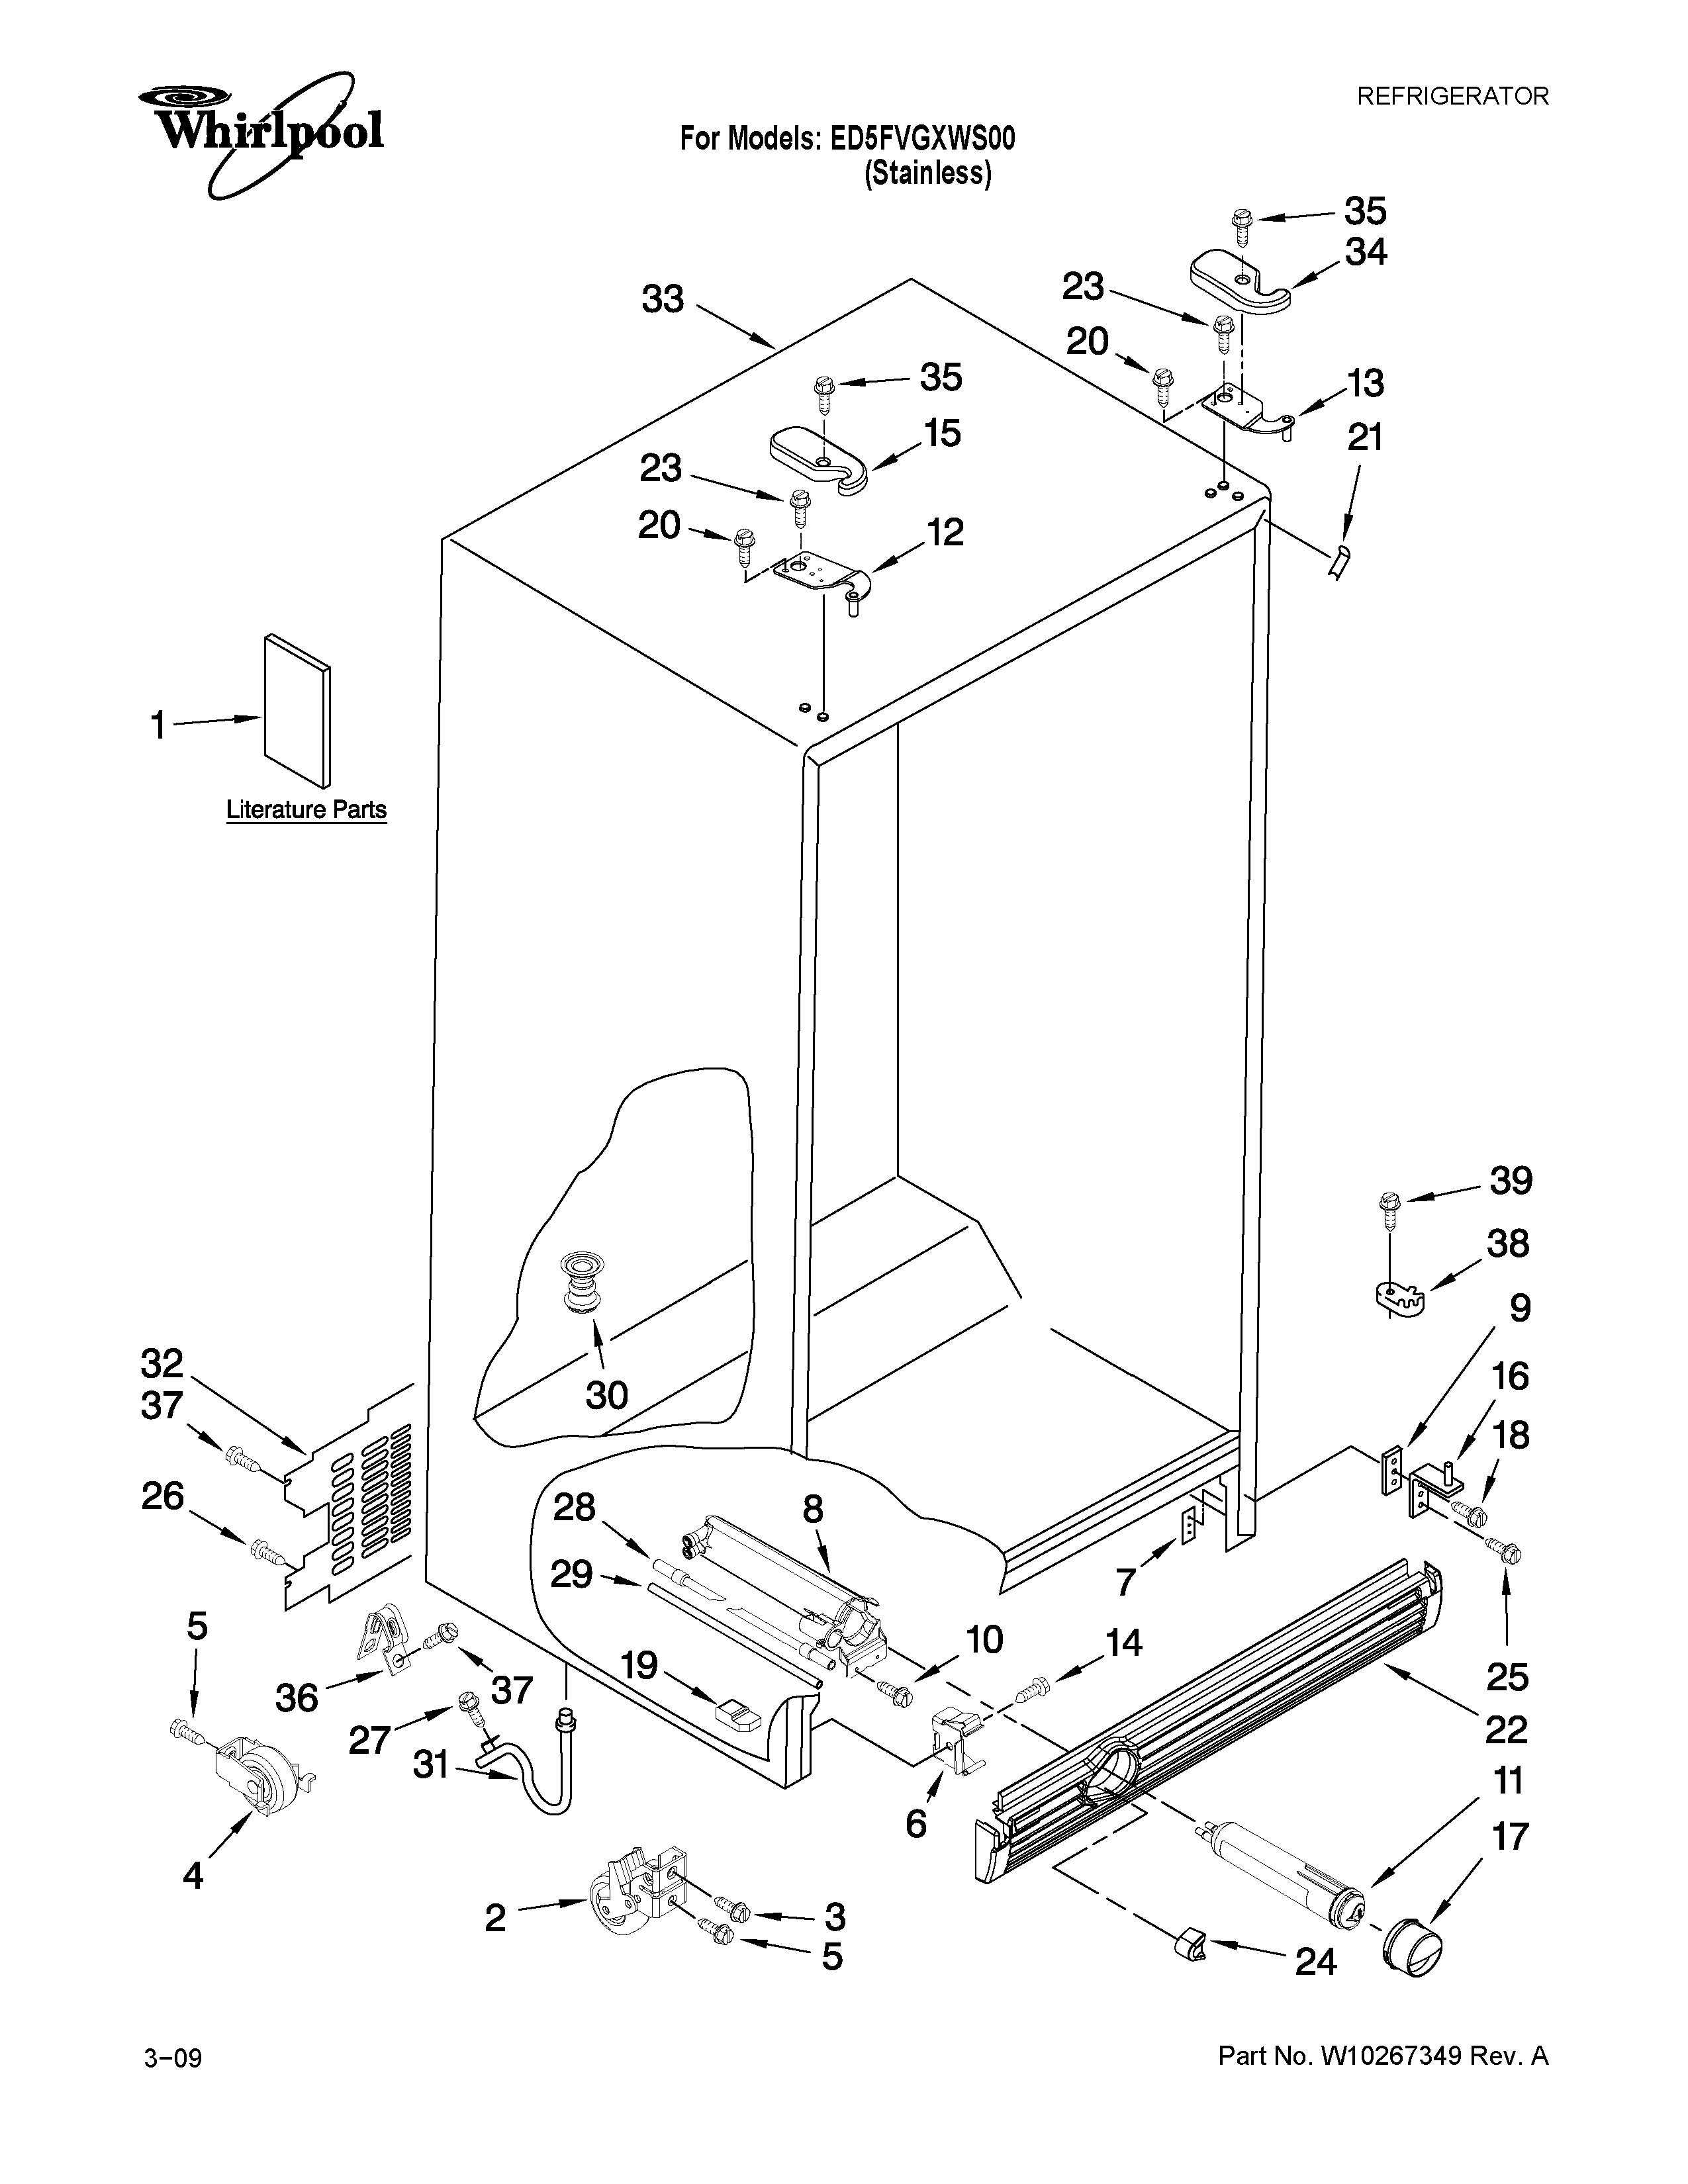 unit parts diagram and parts list for whirlpool roomairconditioner